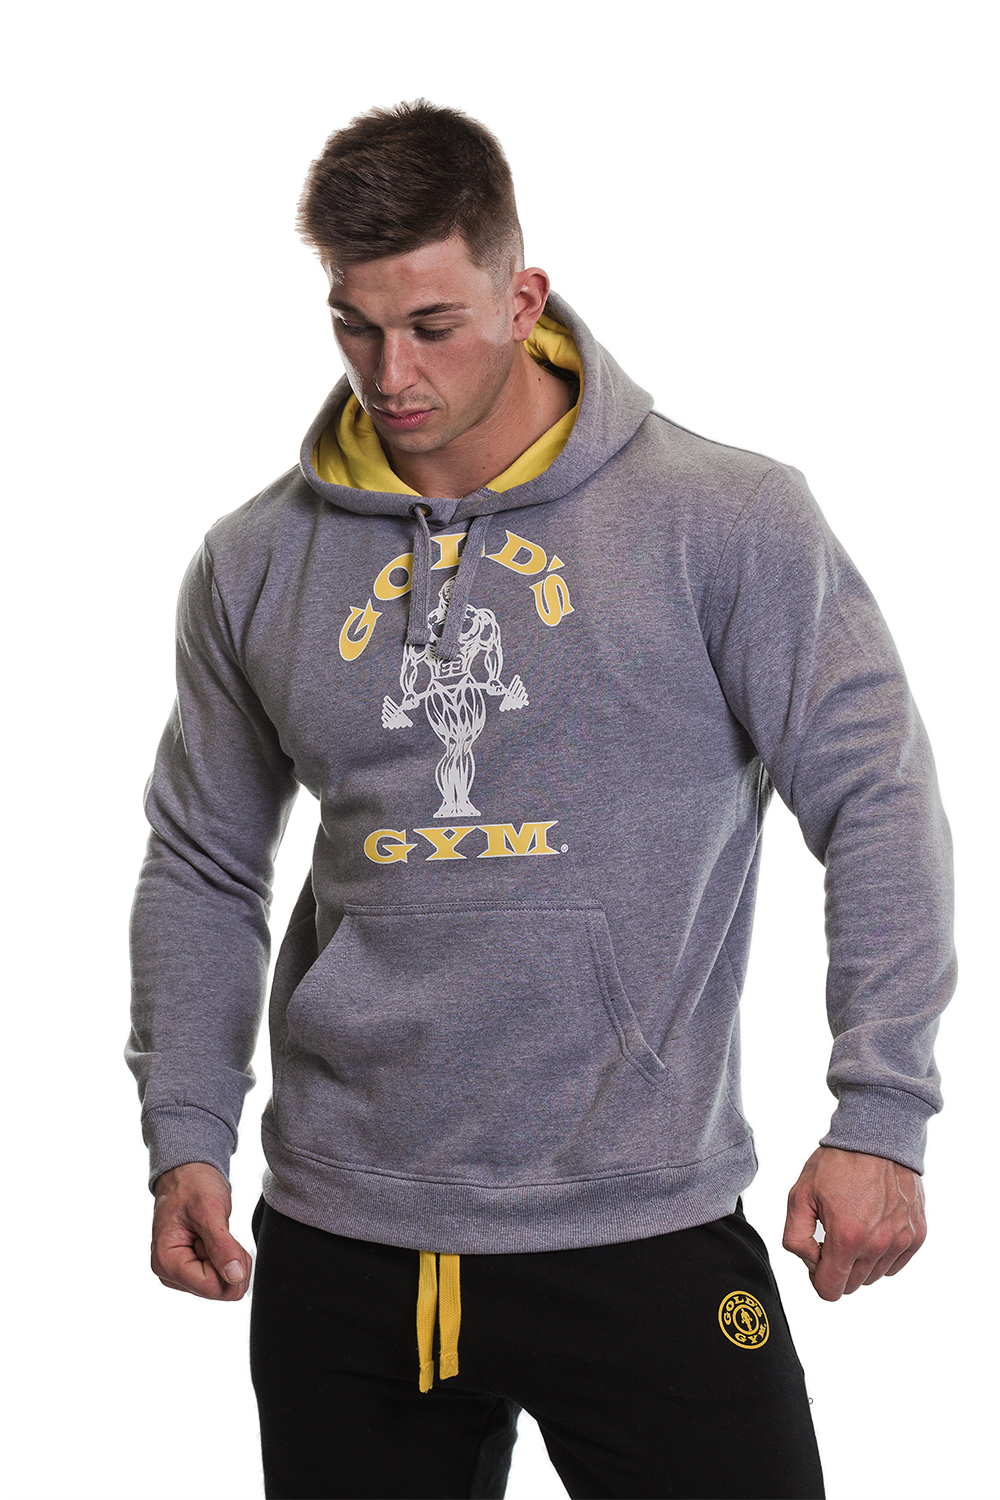 Gym King Muscle Hoodie In Black With Gold Logo | Mood board